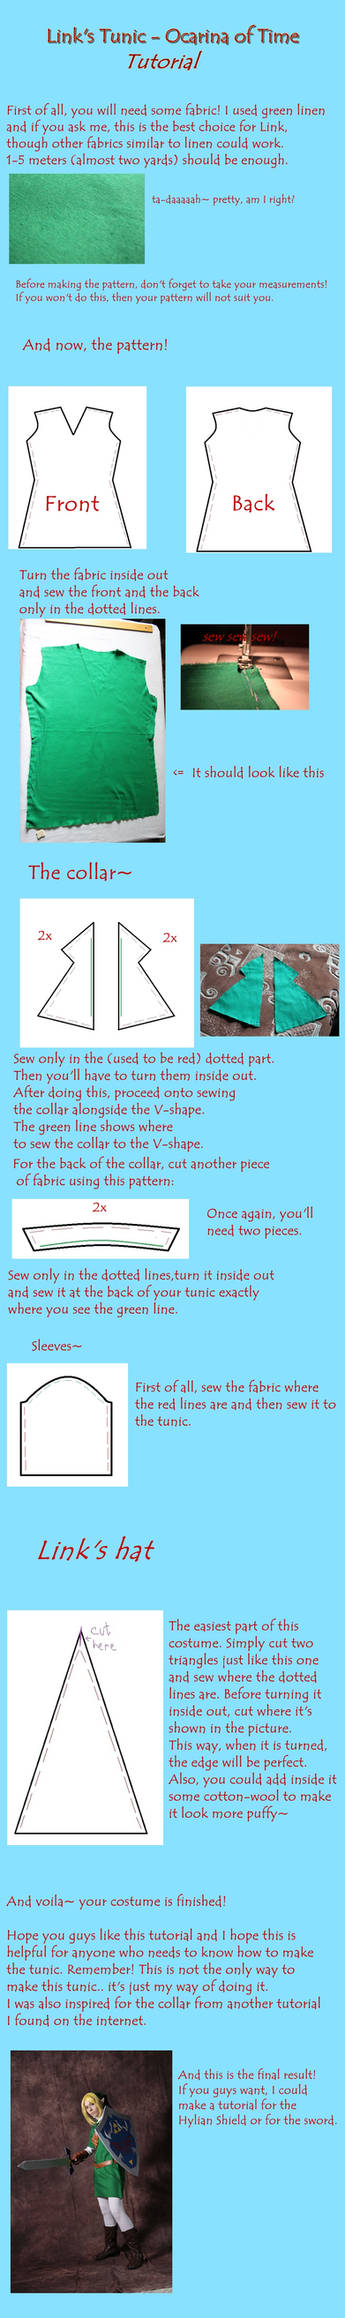 Link tunic tutorial - Ocarina of Time